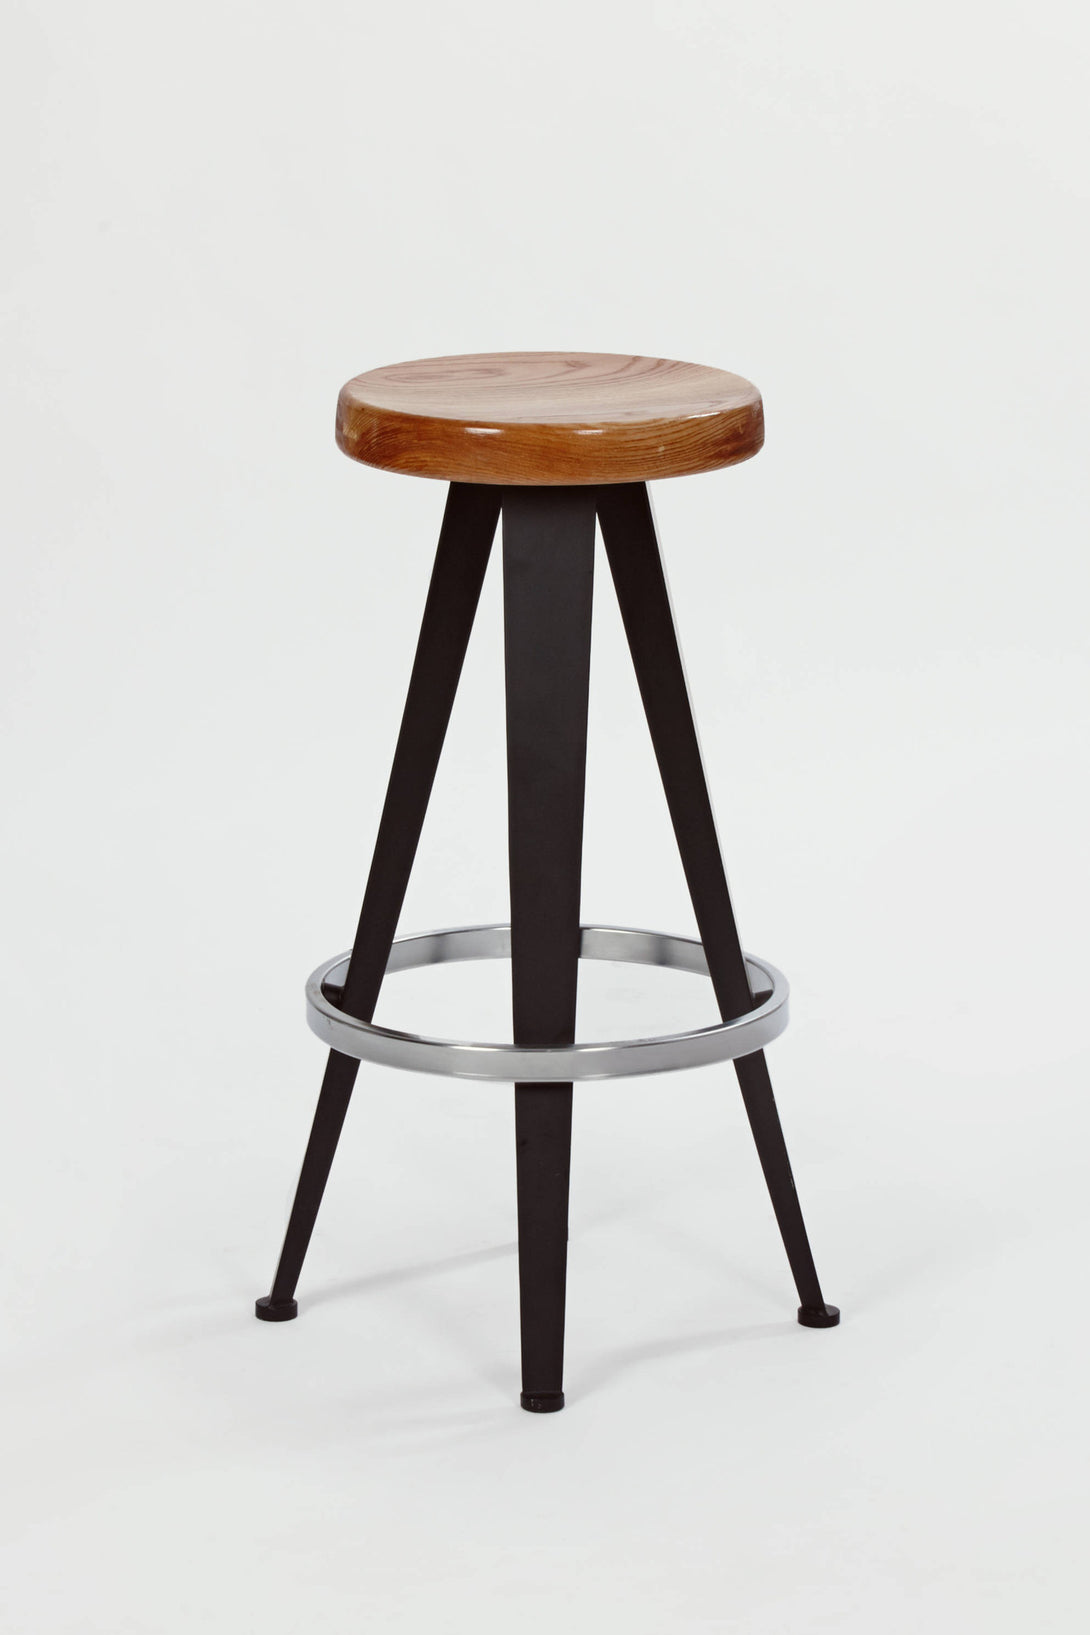 Three Barstools, Design by Jean Prouve - 1980s